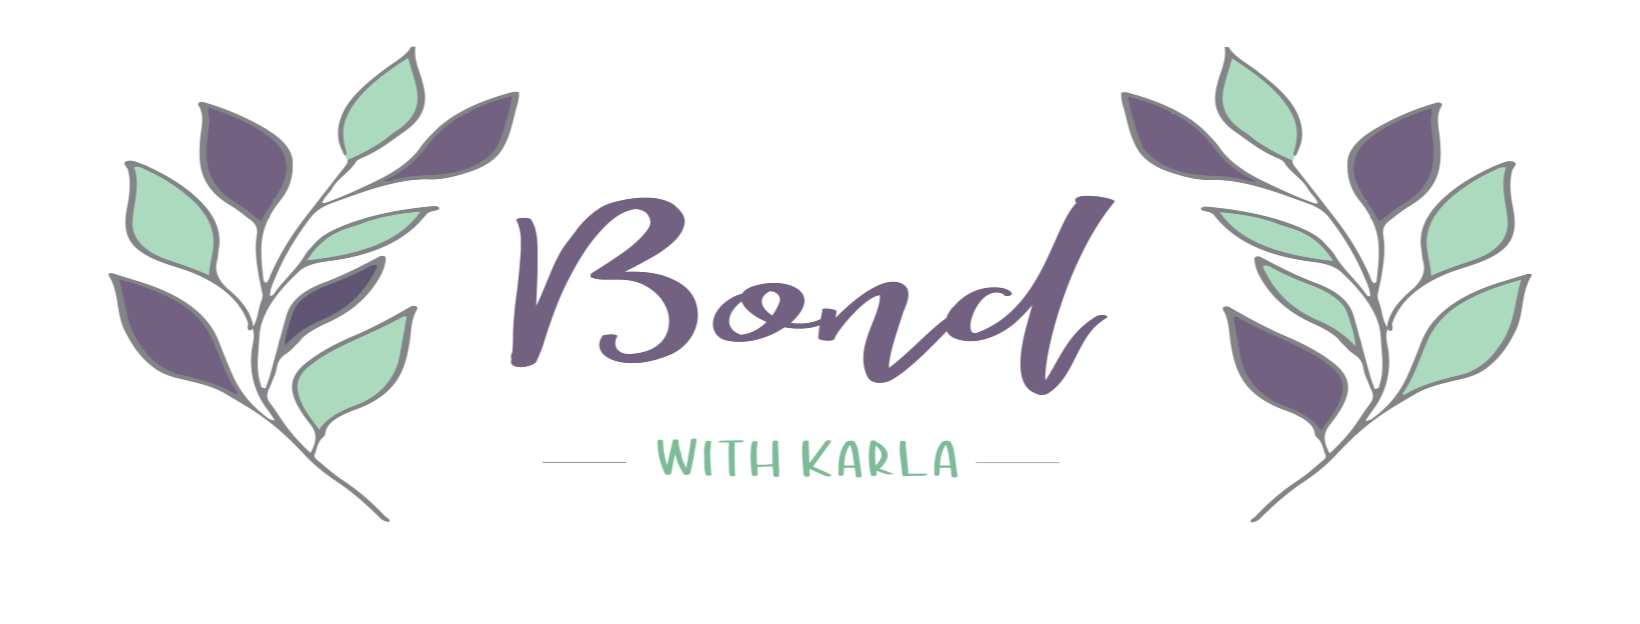 Bond With Karla